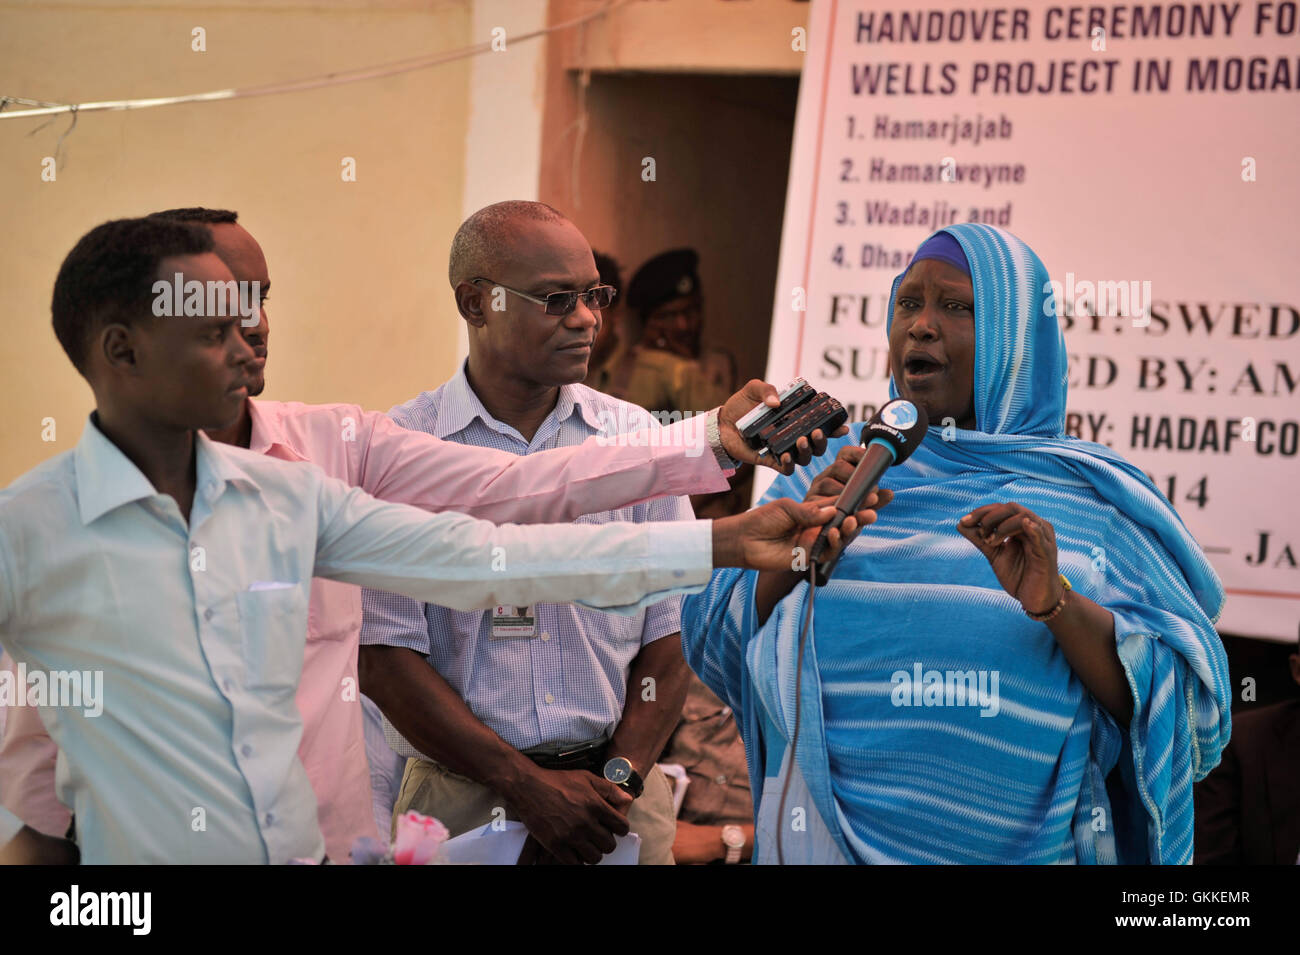 Zeinab Mohamed, chairlady of the local community, gives a speech at a handover ceremony for a well donated by the - Stock Image